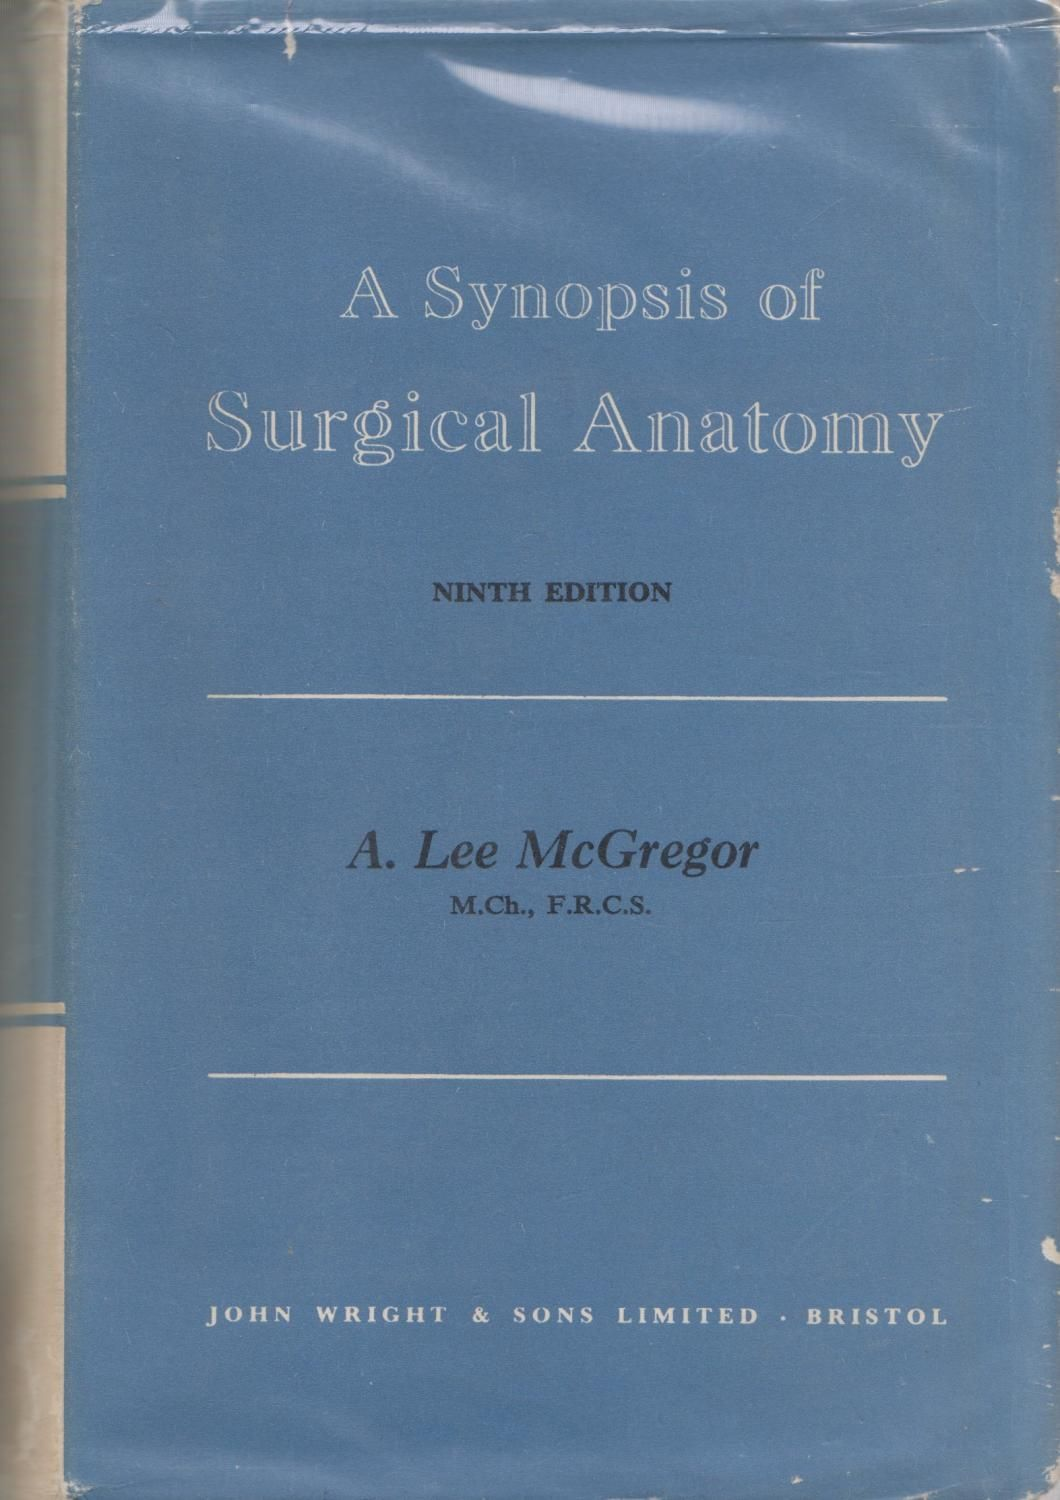 A Synopsis Of Surgical Anatomy: Alexander Lee Mcgregor | Books by ...